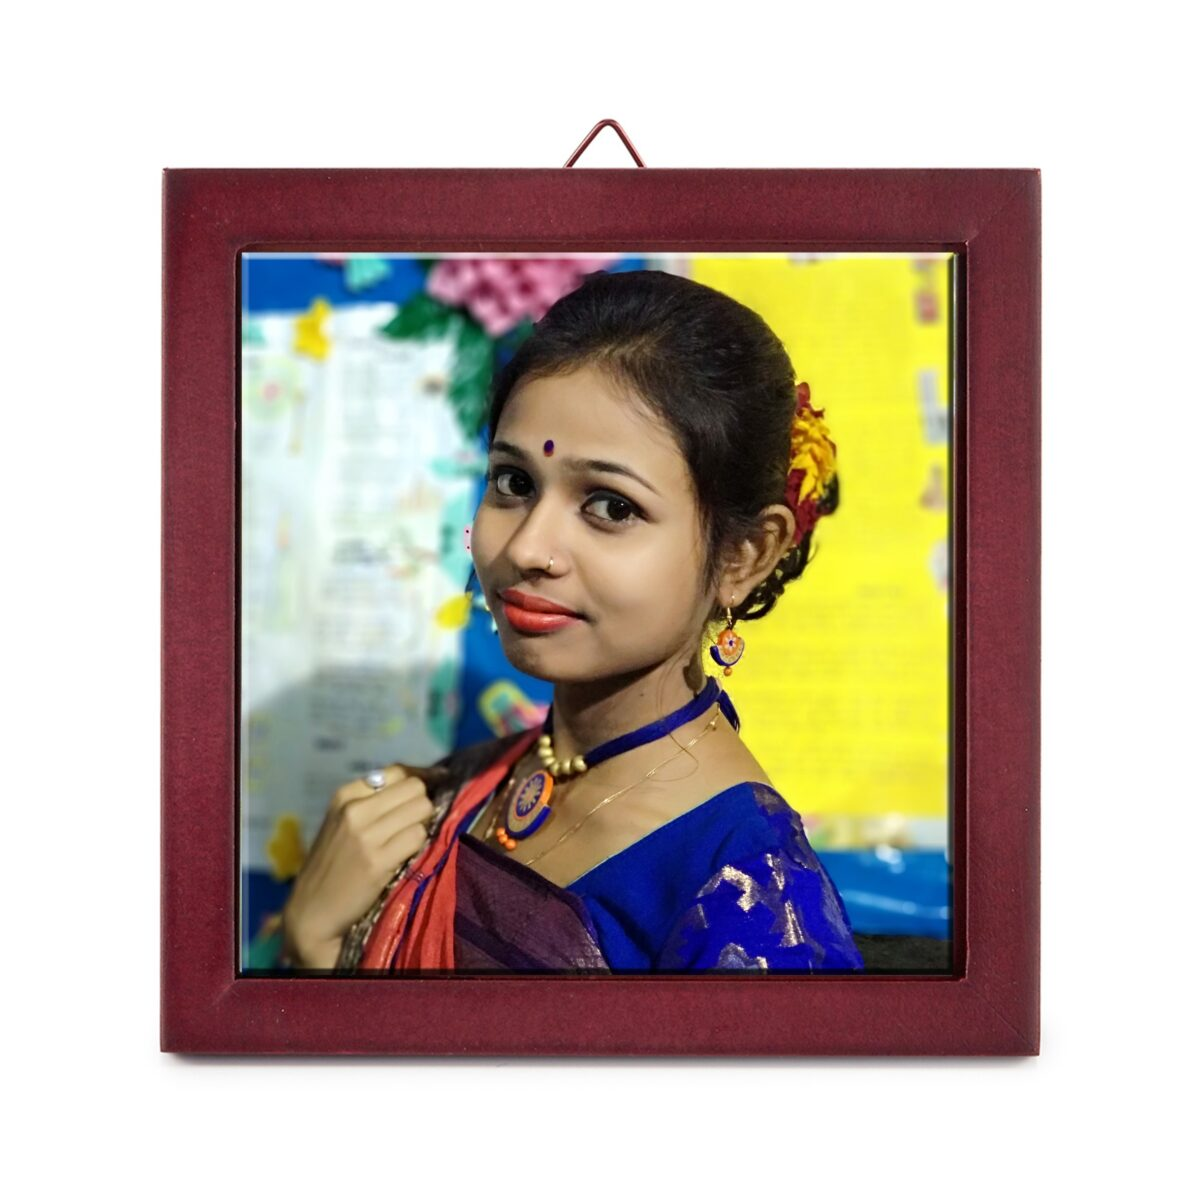 4'' x 4'' Personalized Photo Printed Ceramic Tile (with Wooden Frame)